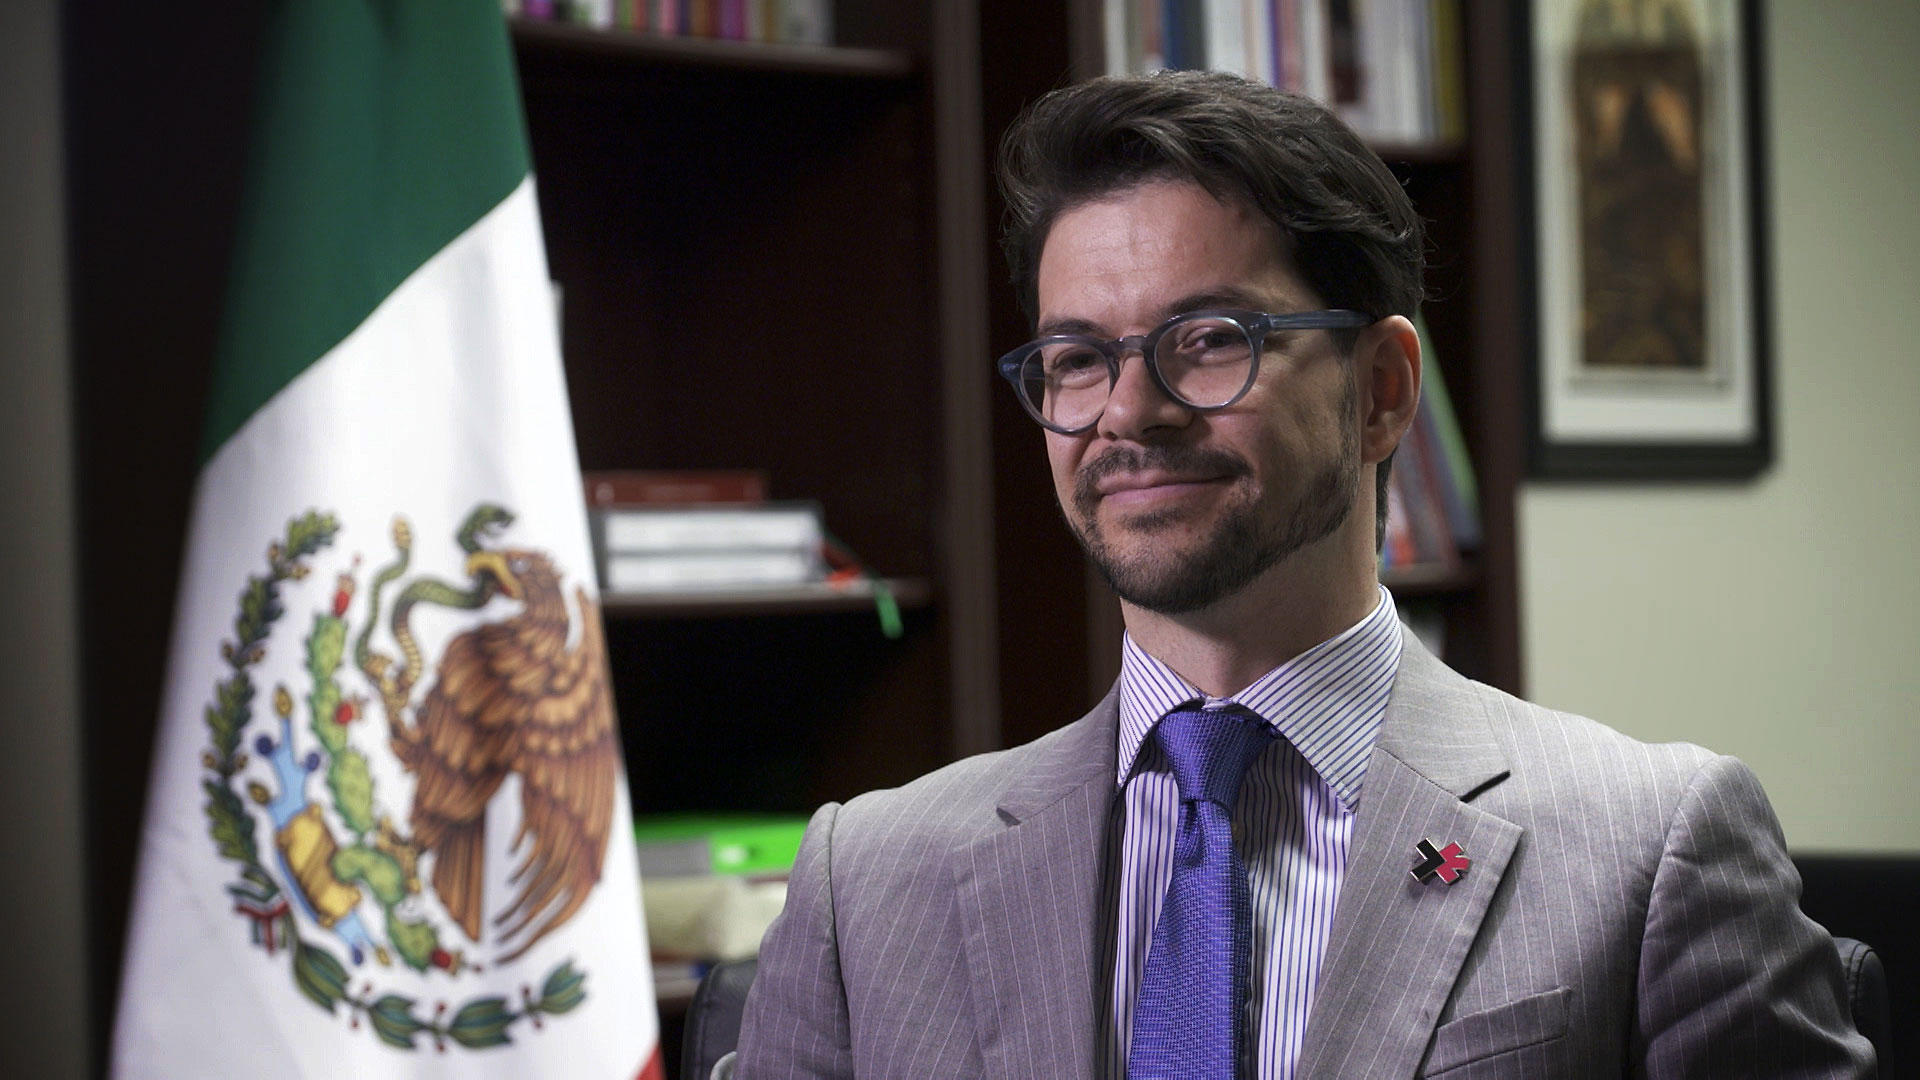 Consul Rafael Barceló Durazo of the Mexican Consulate in Tucson. August 24, 2020.